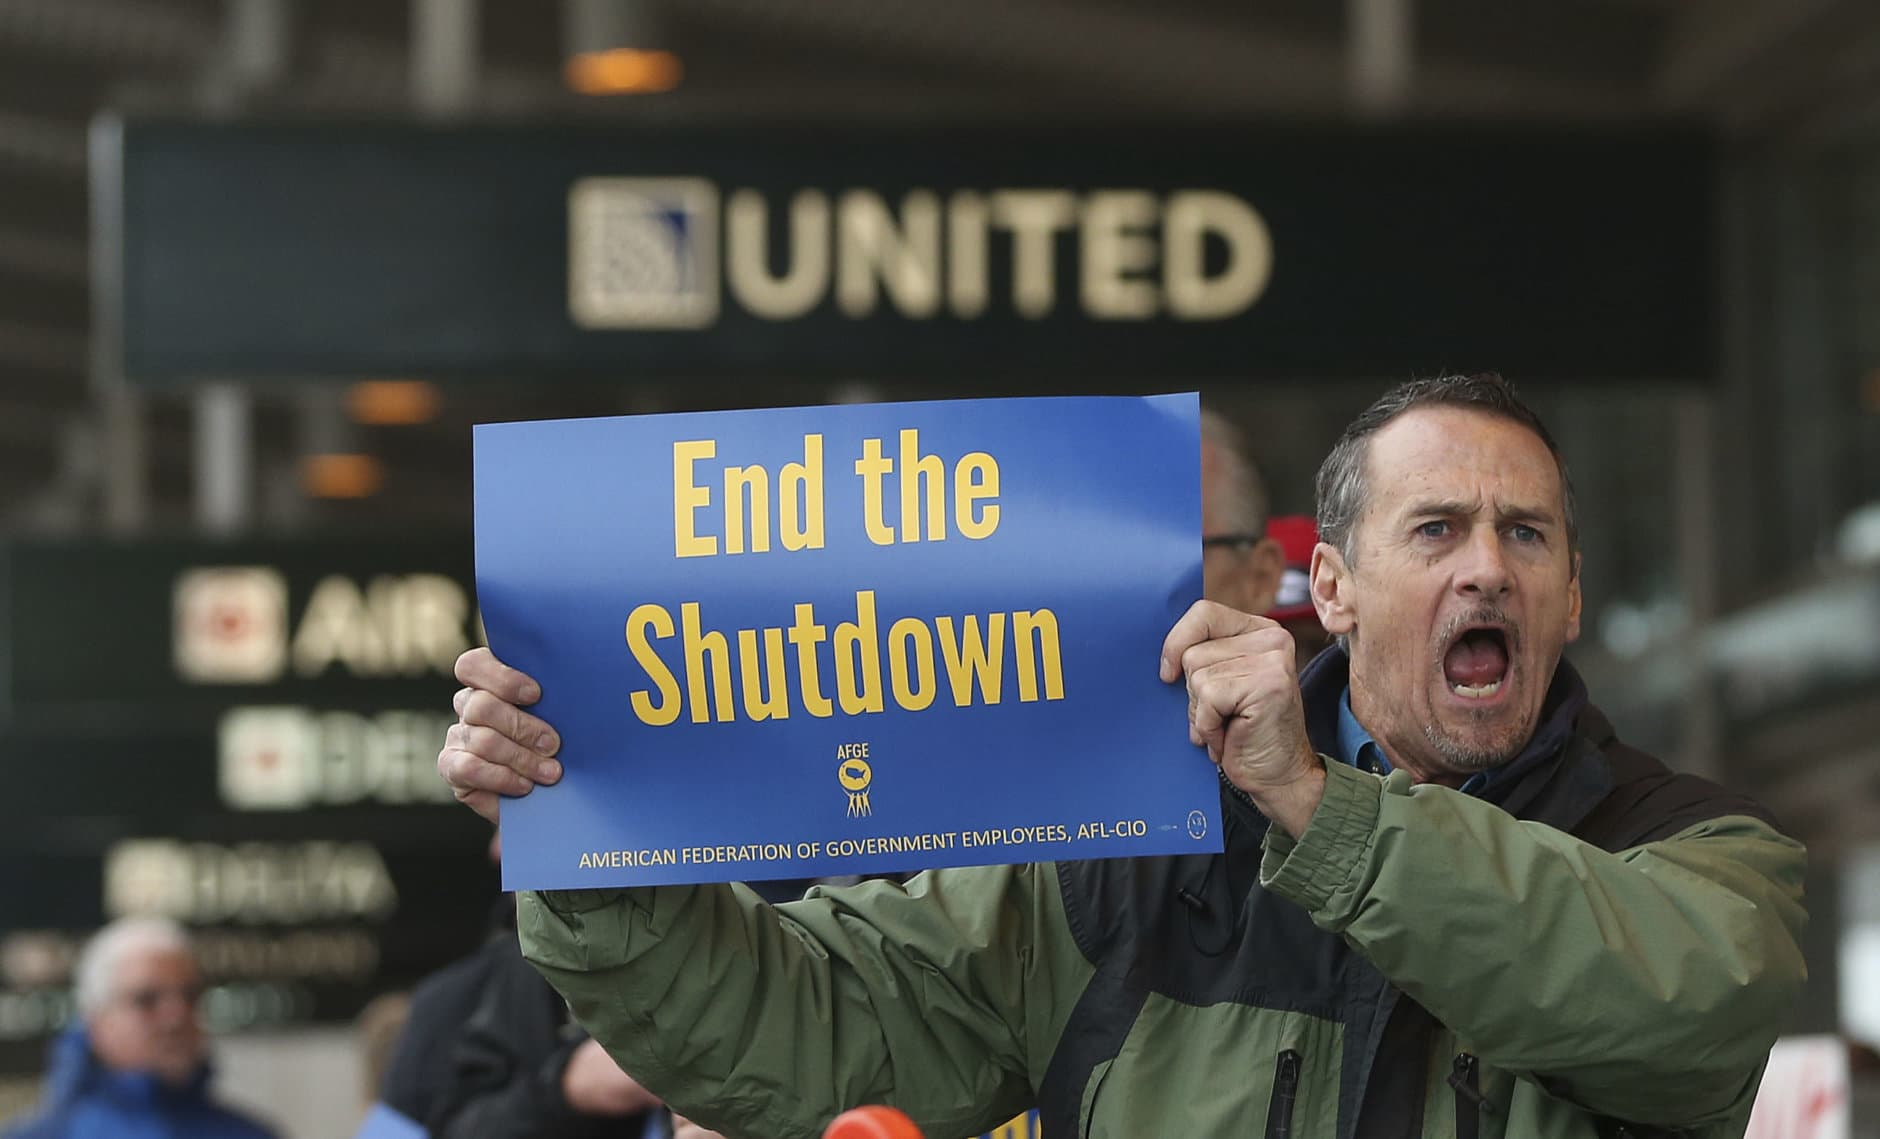 Several dozen federal employees and supporters demonstrated at the Sacramento International Airport calling for President Donald Trump and Washington lawmakers to end then partial government shutdown, Wednesday, Jan. 16, 2019, in Sacramento, Calif. (AP Photo/Rich Pedroncelli)